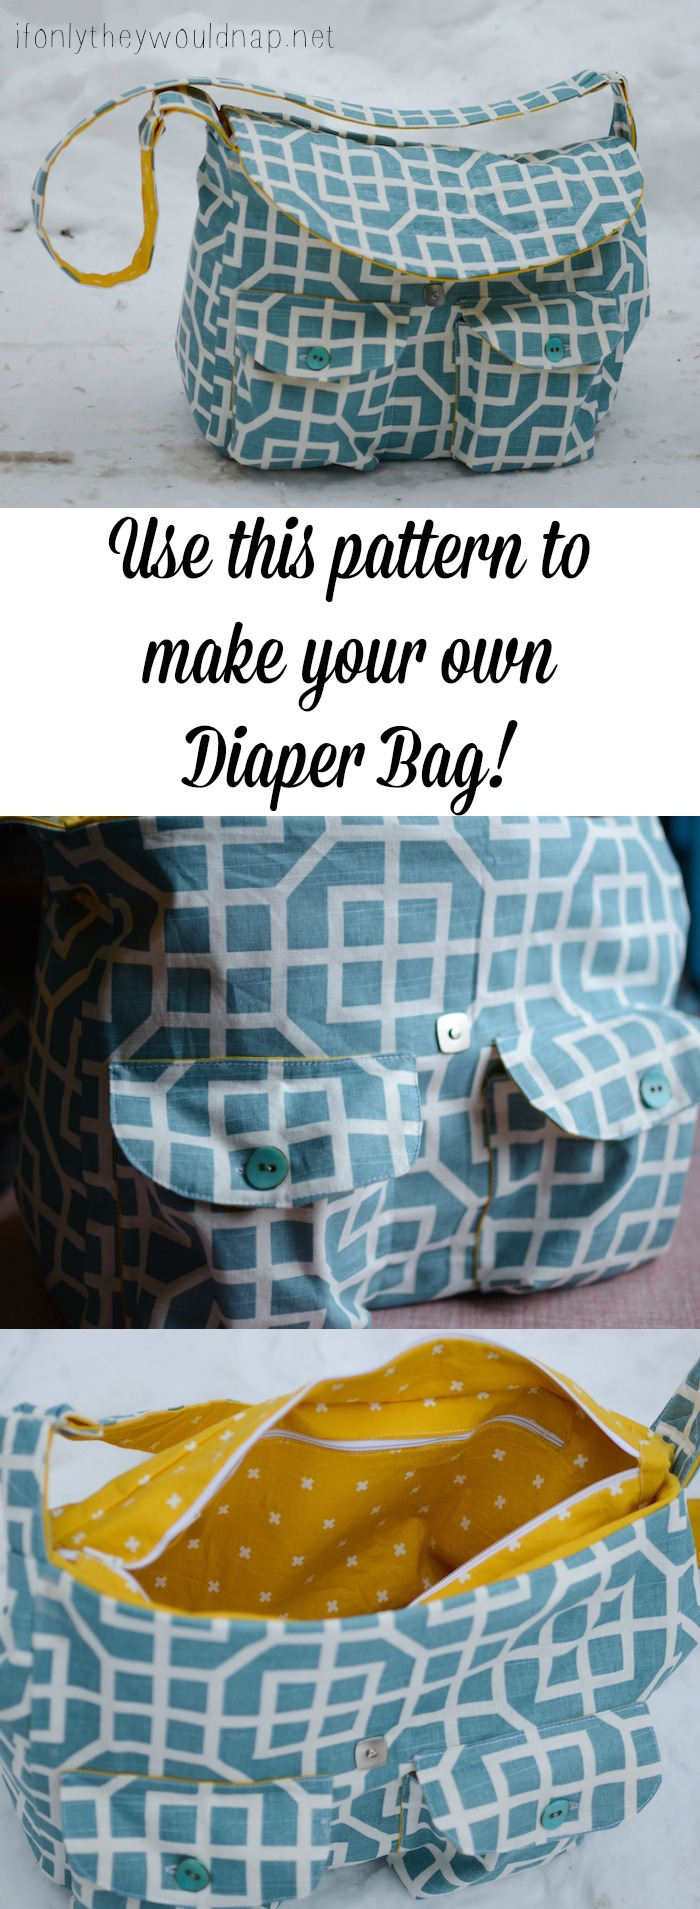 Make your own diaper bag